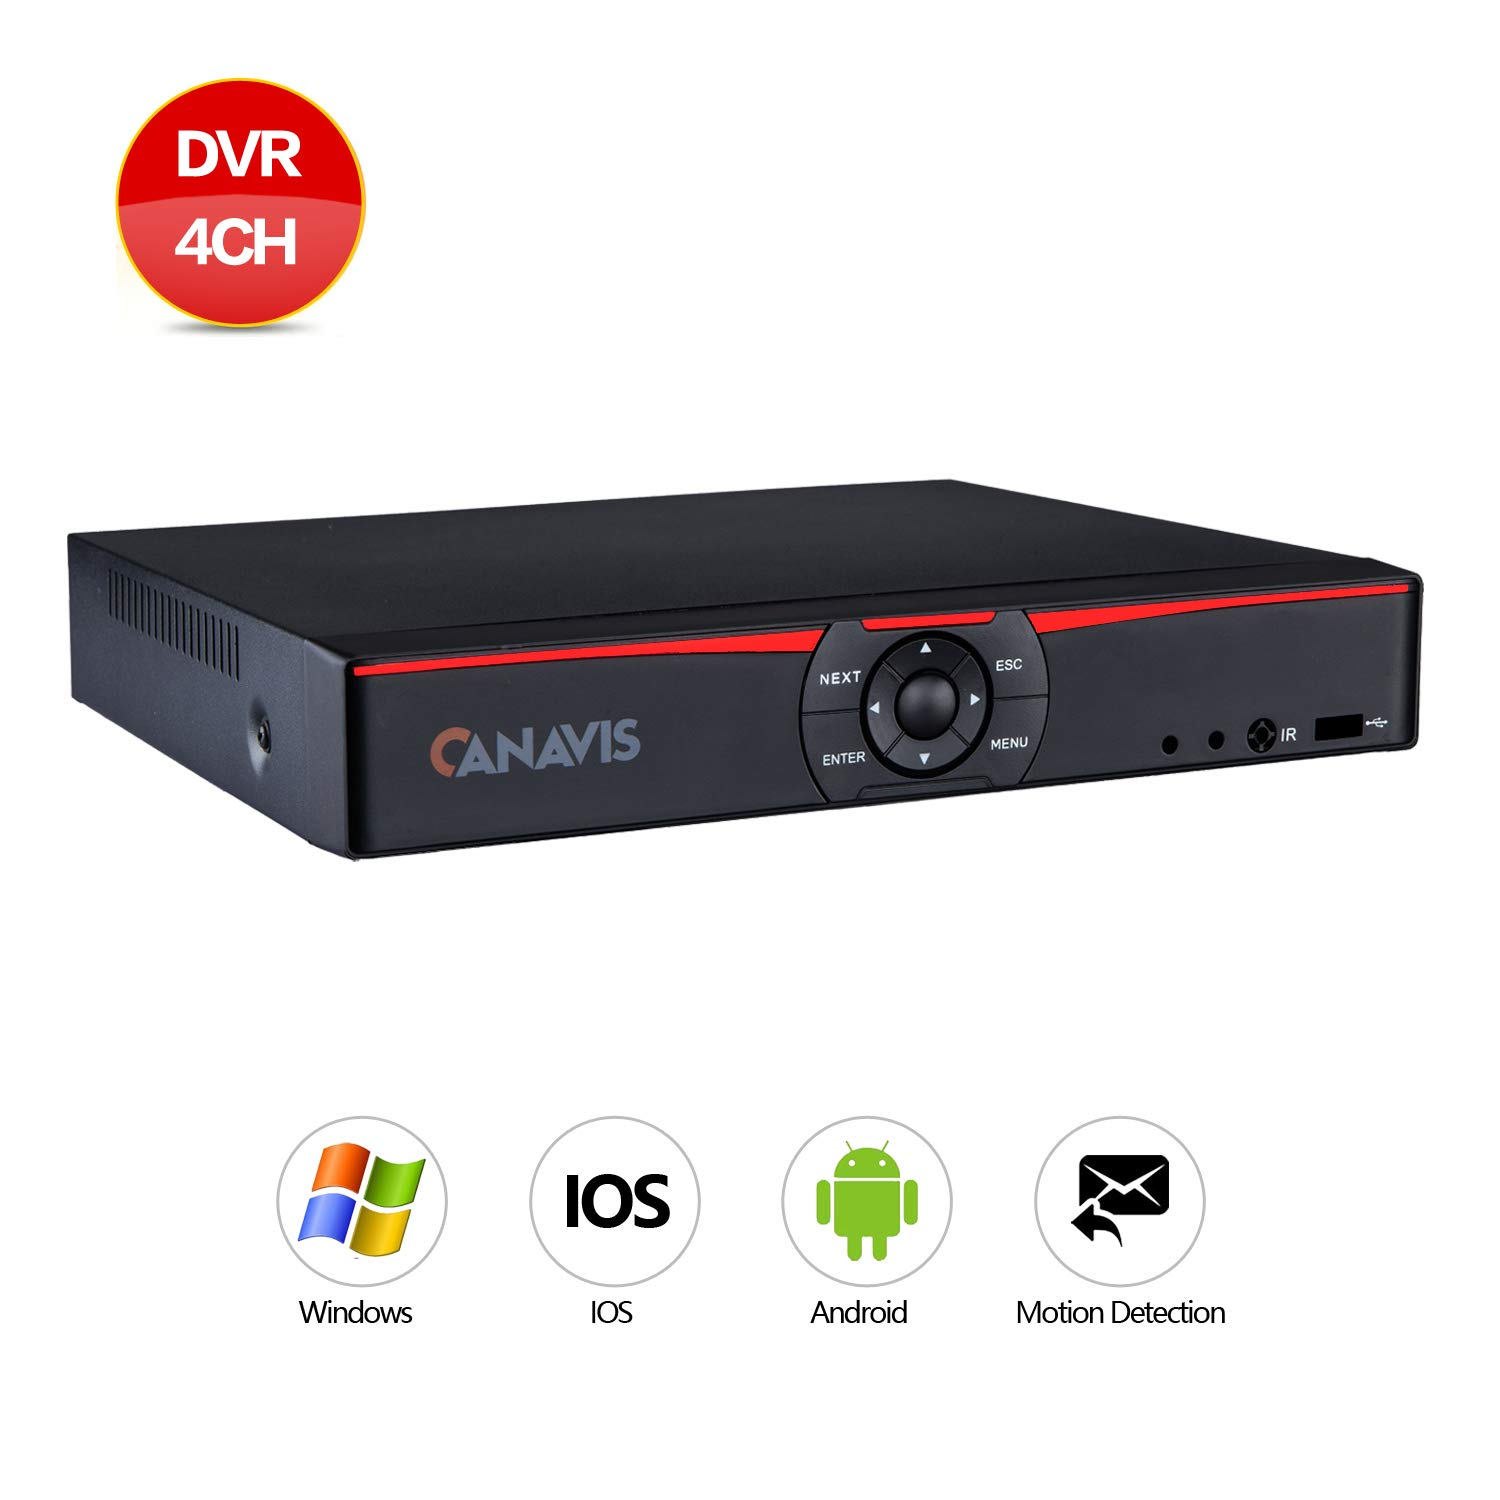 CANAVIS 4CH 1080N Hybrid 5-in-1 AHD DVR (1080P NVR+1080N AHD+960H Analog+TVI+CVI) Standalone DVR CCTV Surveillance Security System Video Recorder No HDD,Cameras Not Included